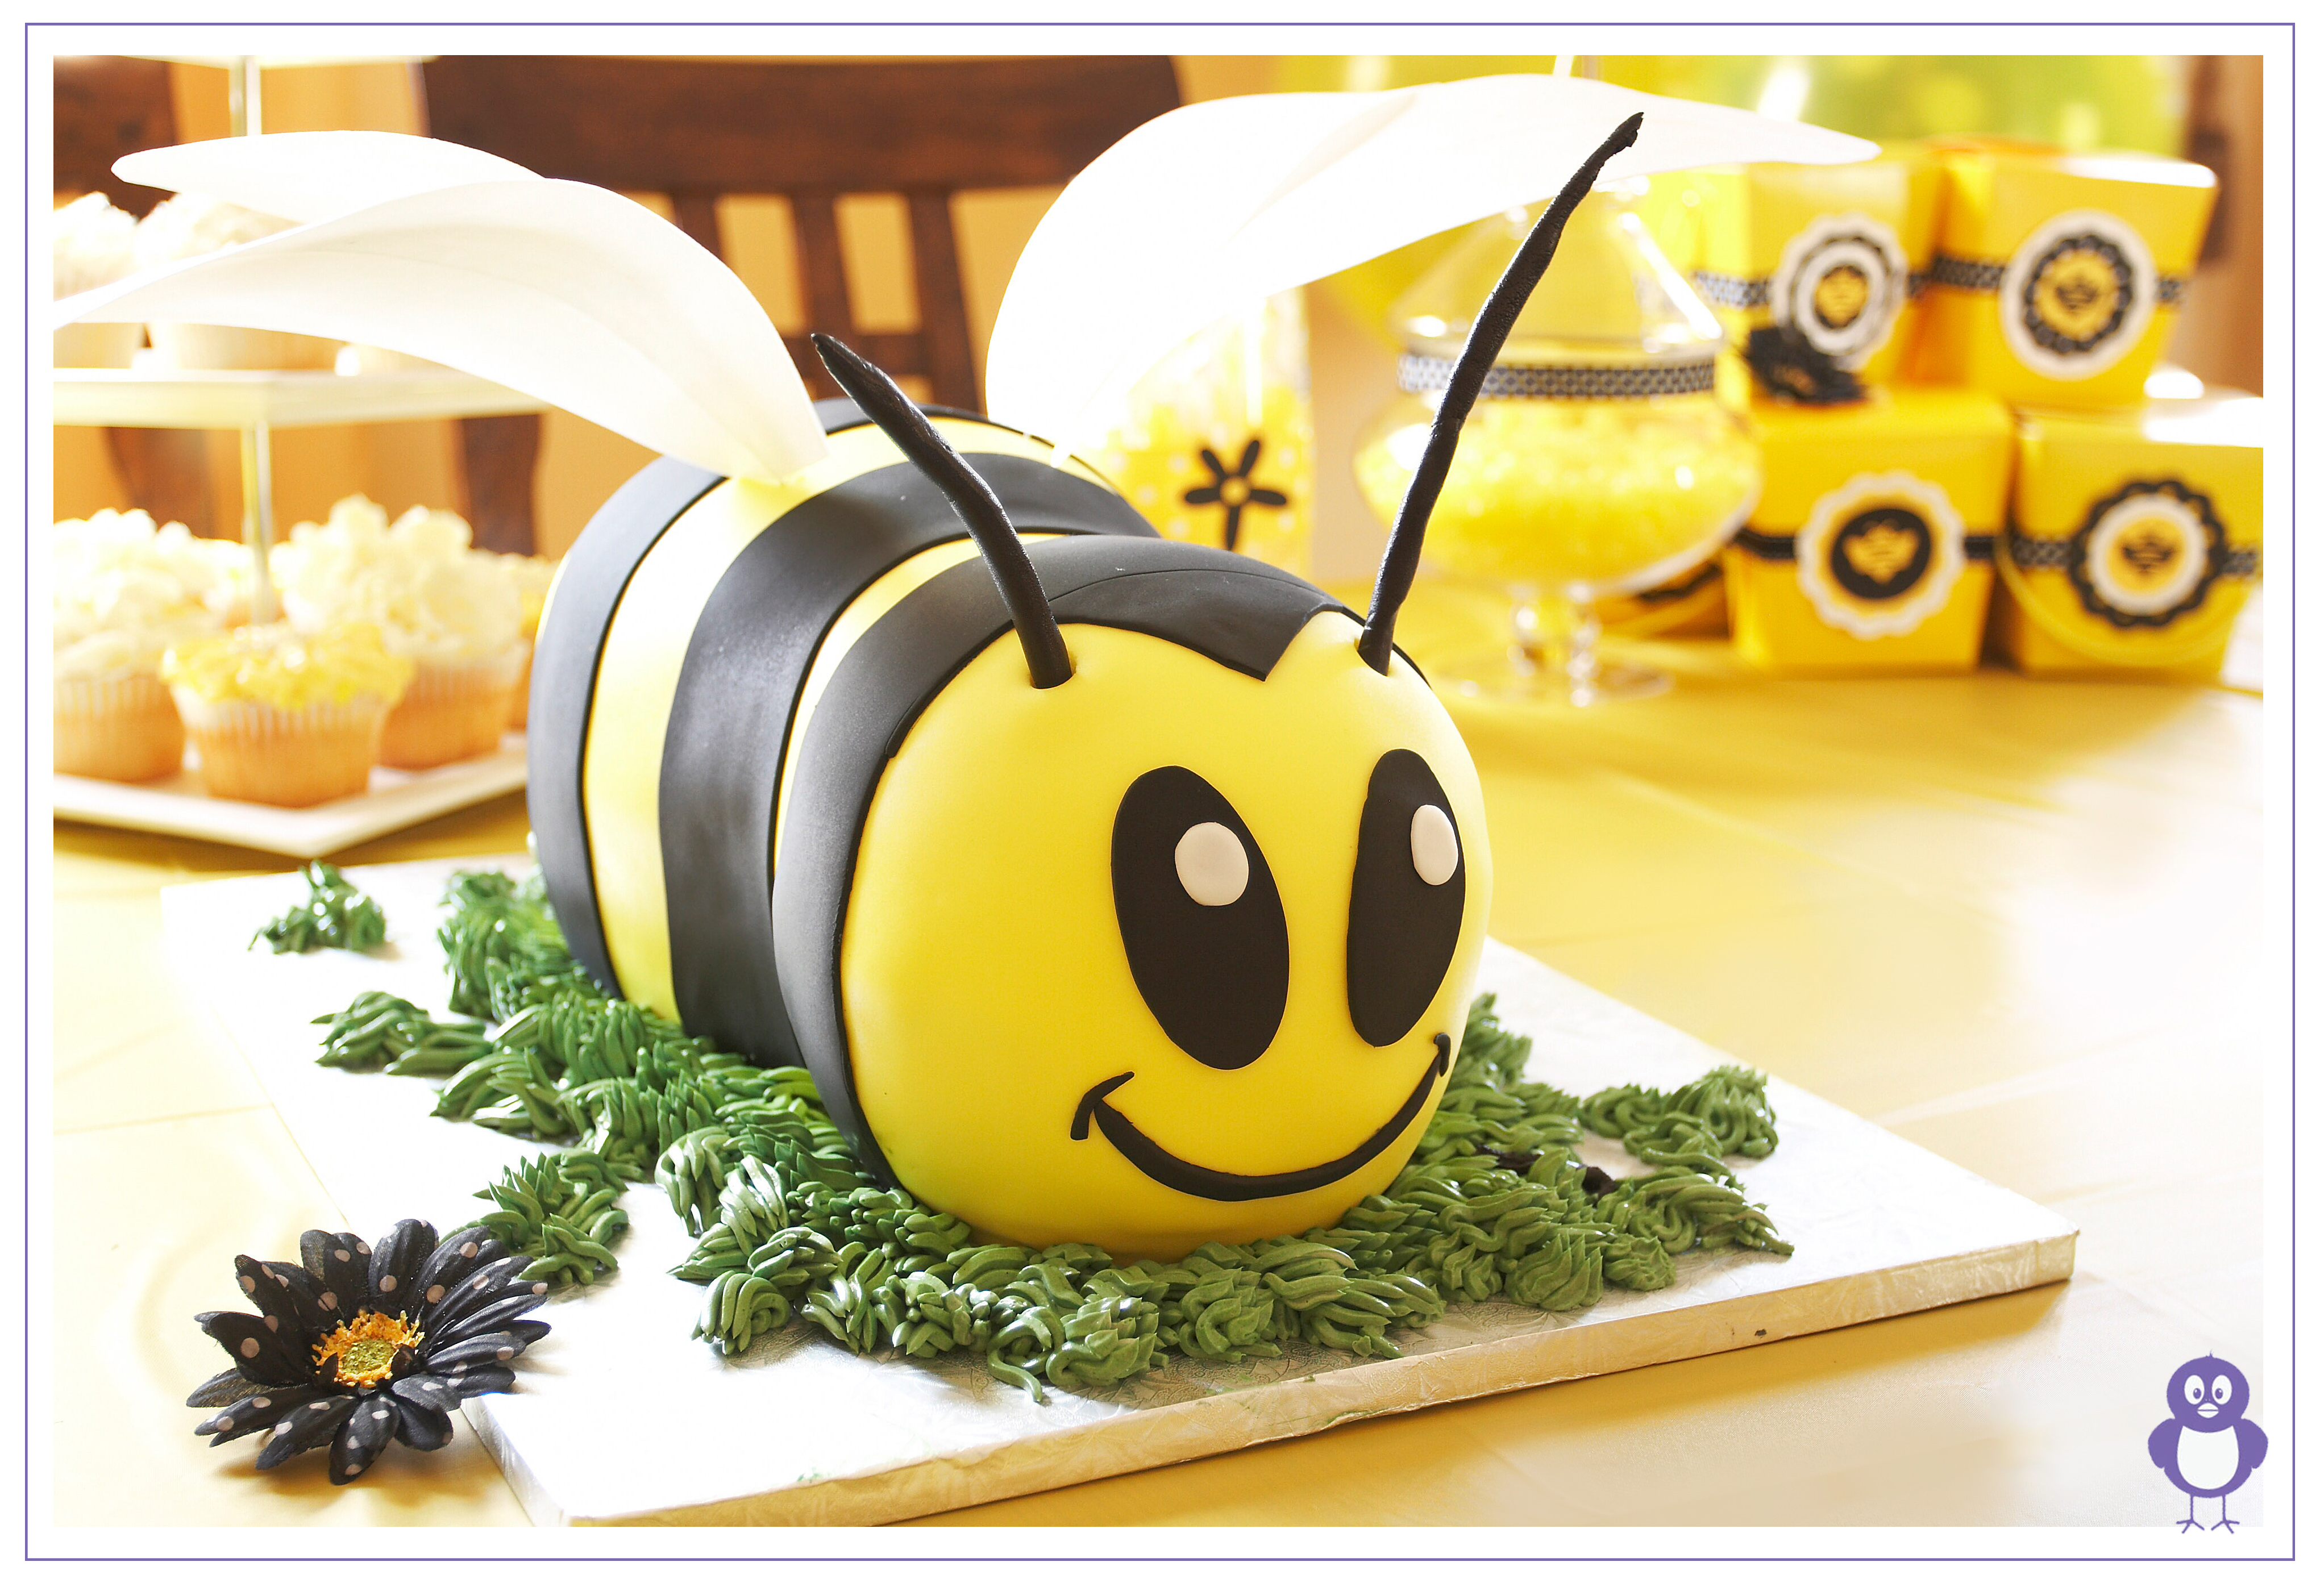 6 Bumble Bee First Birthday Cake With Cupcakes Photo Bumble Bee